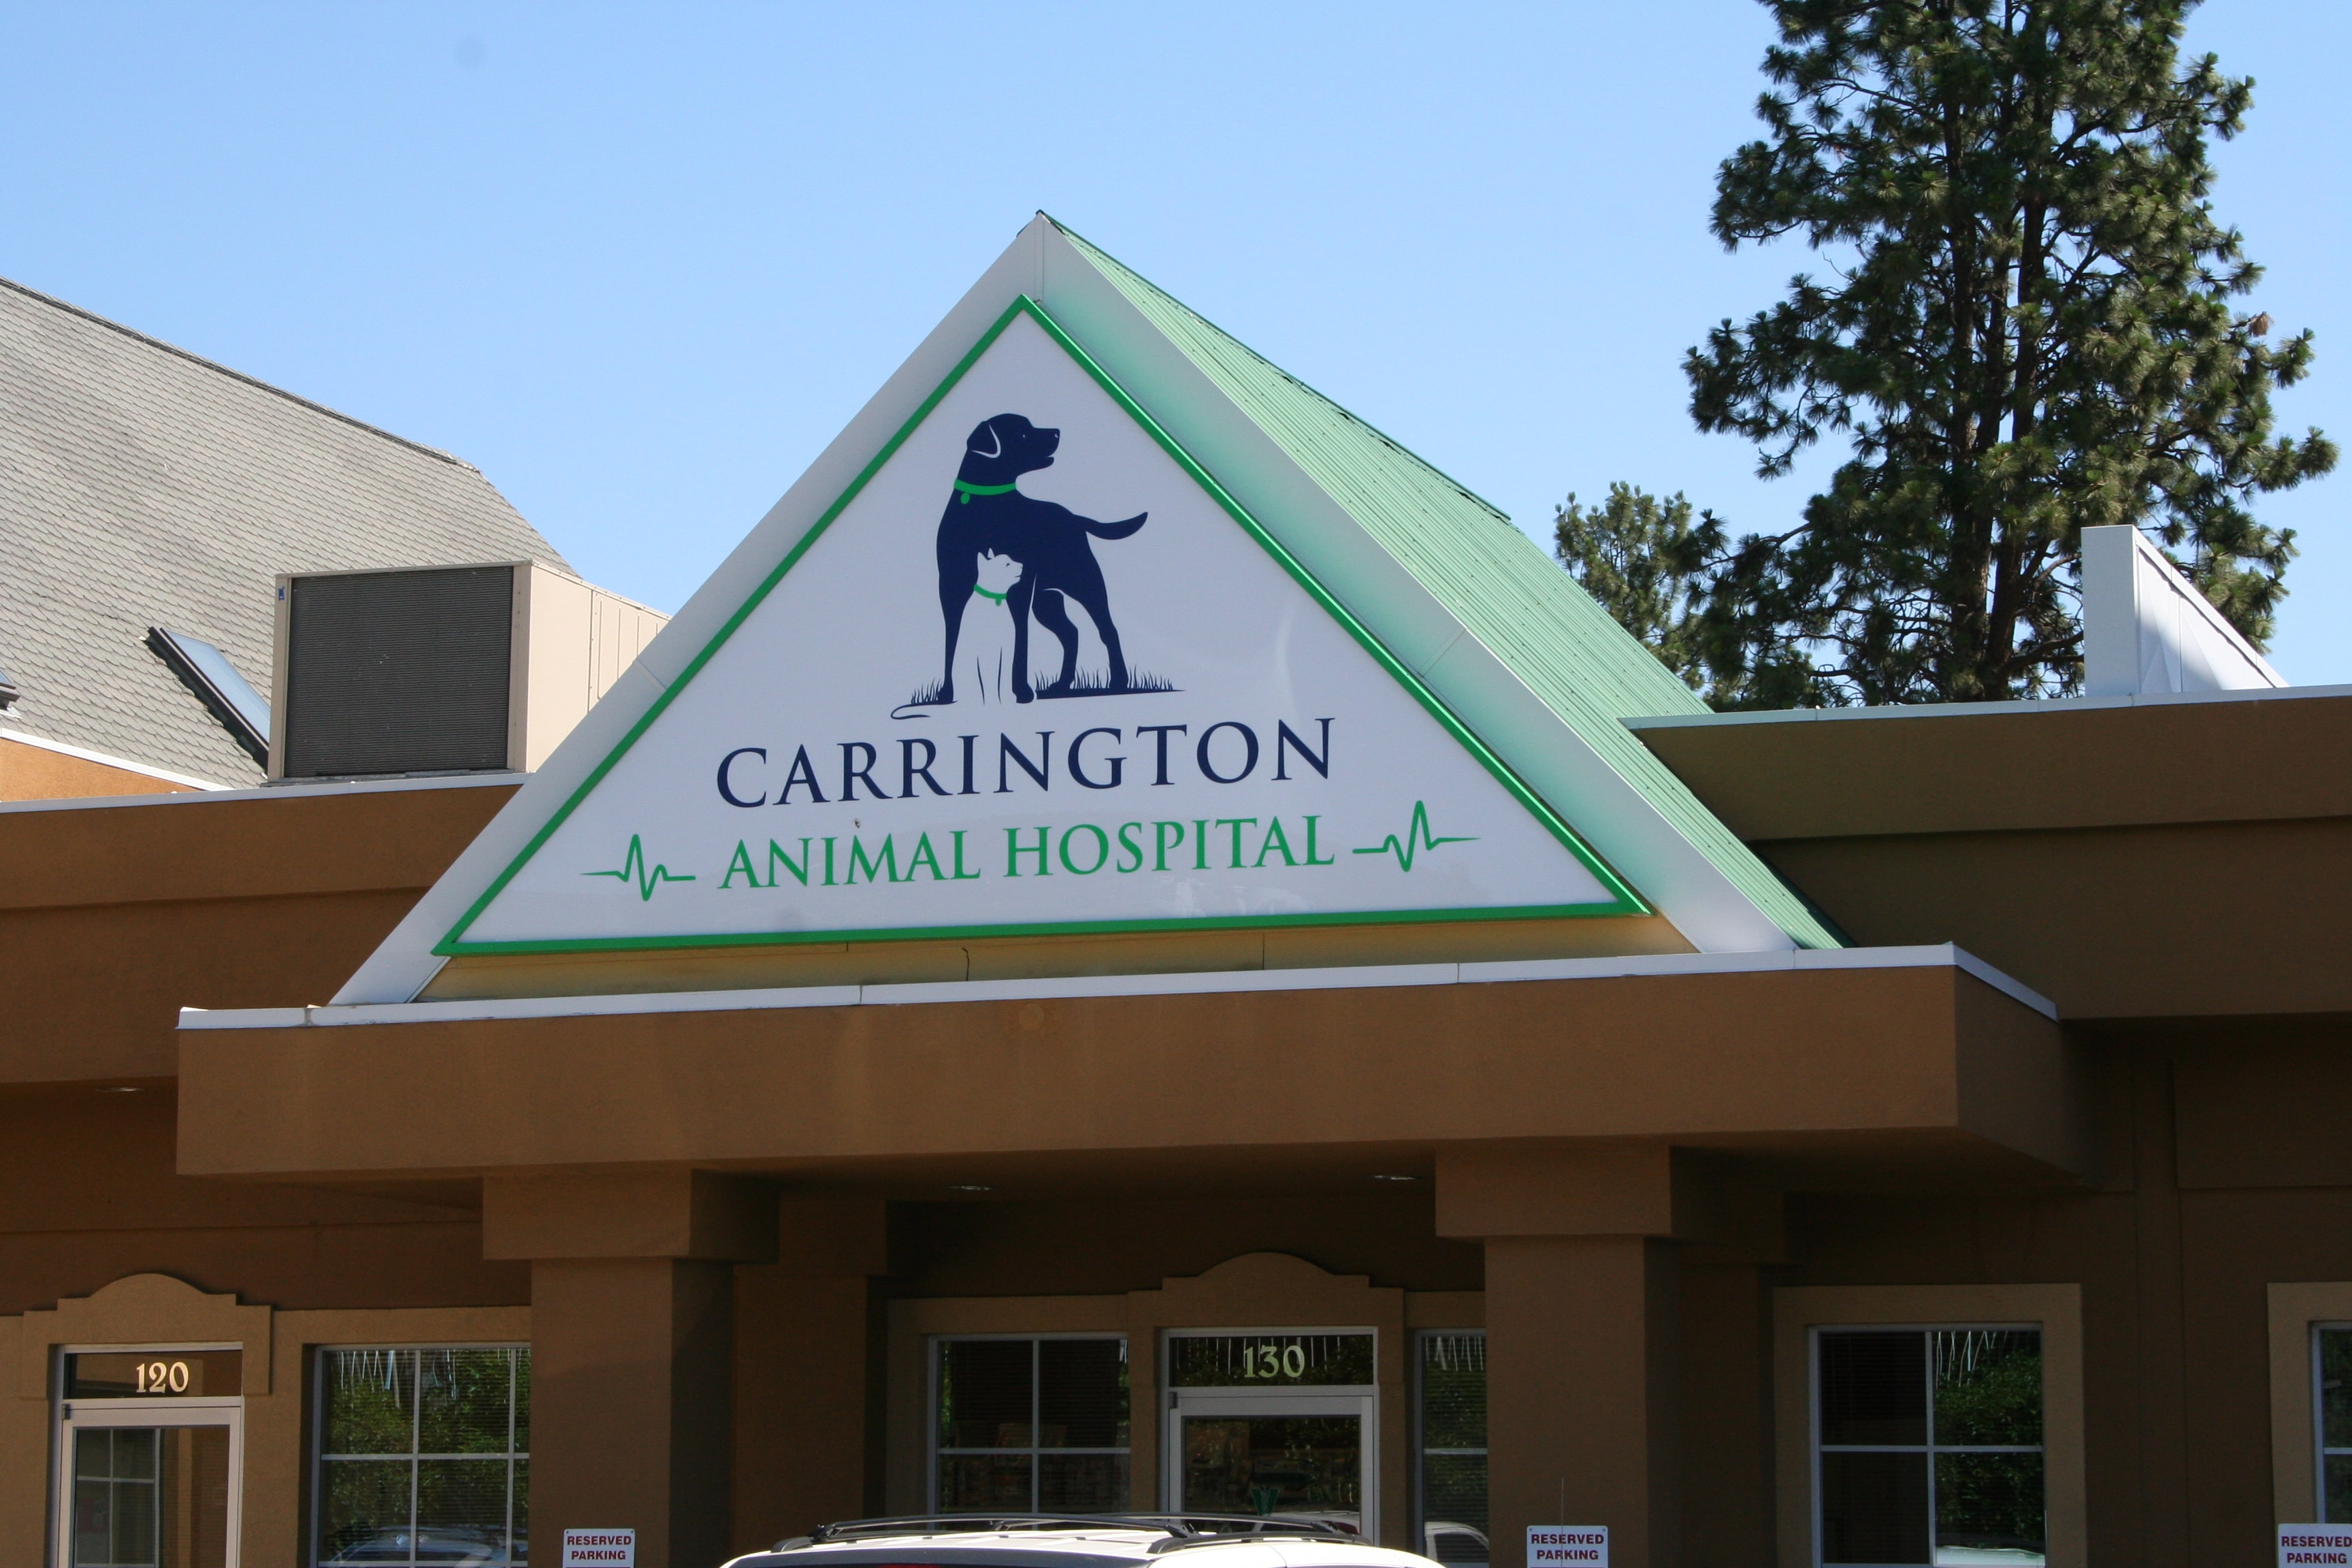 Carrington Animal Hospital